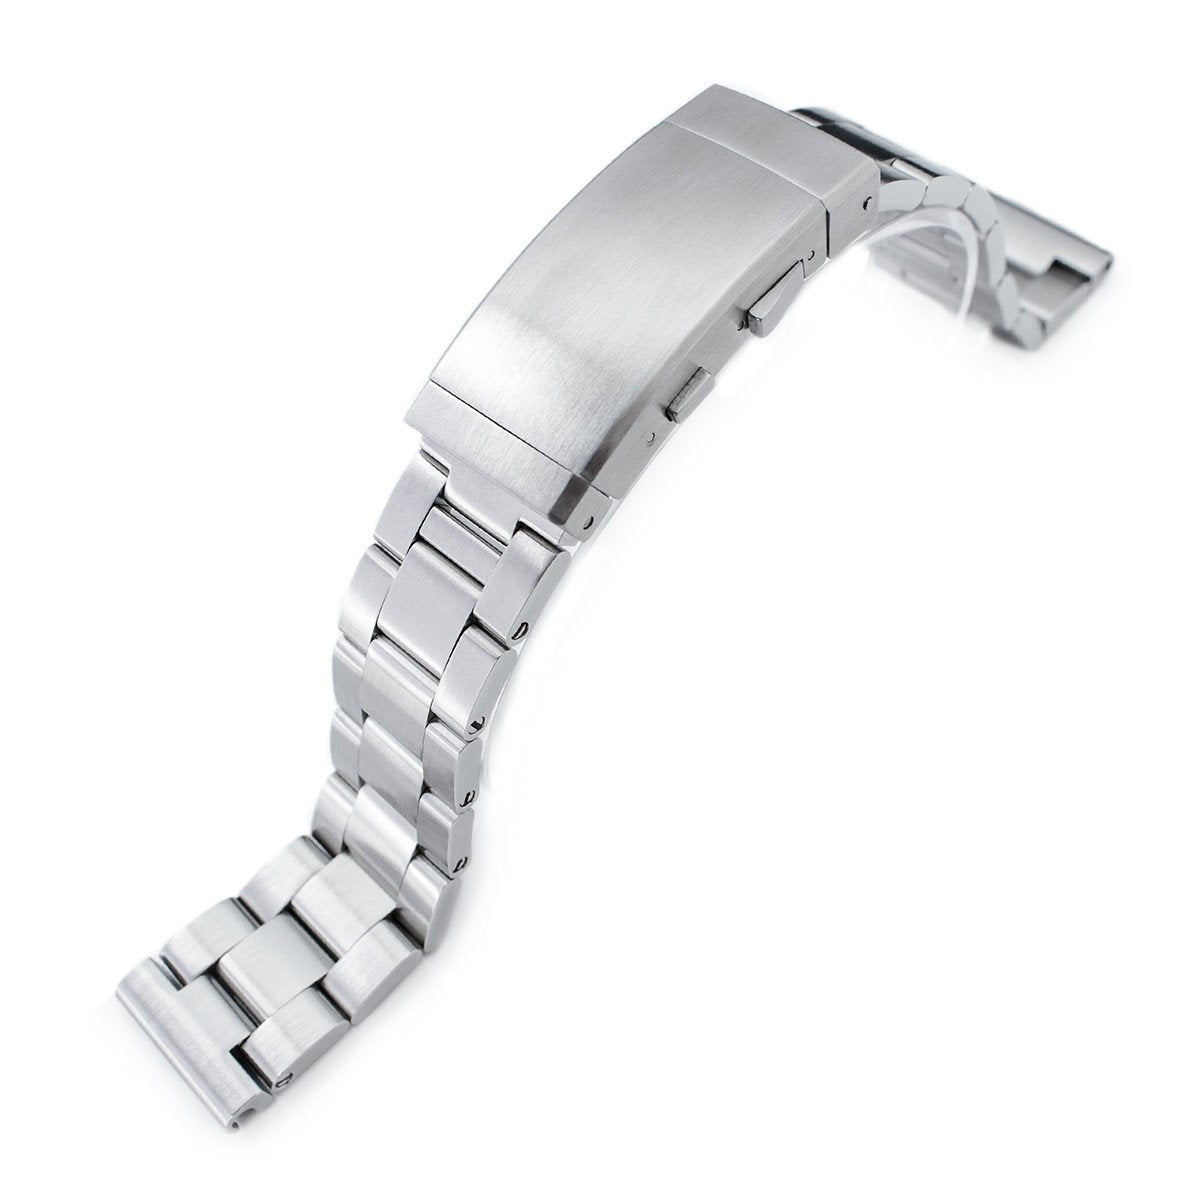 20mm Super-O Boyer 316L Stainless Steel Watch Bracelet Straight End Ratchet Clasp Brushed Strapcode Watch Bands